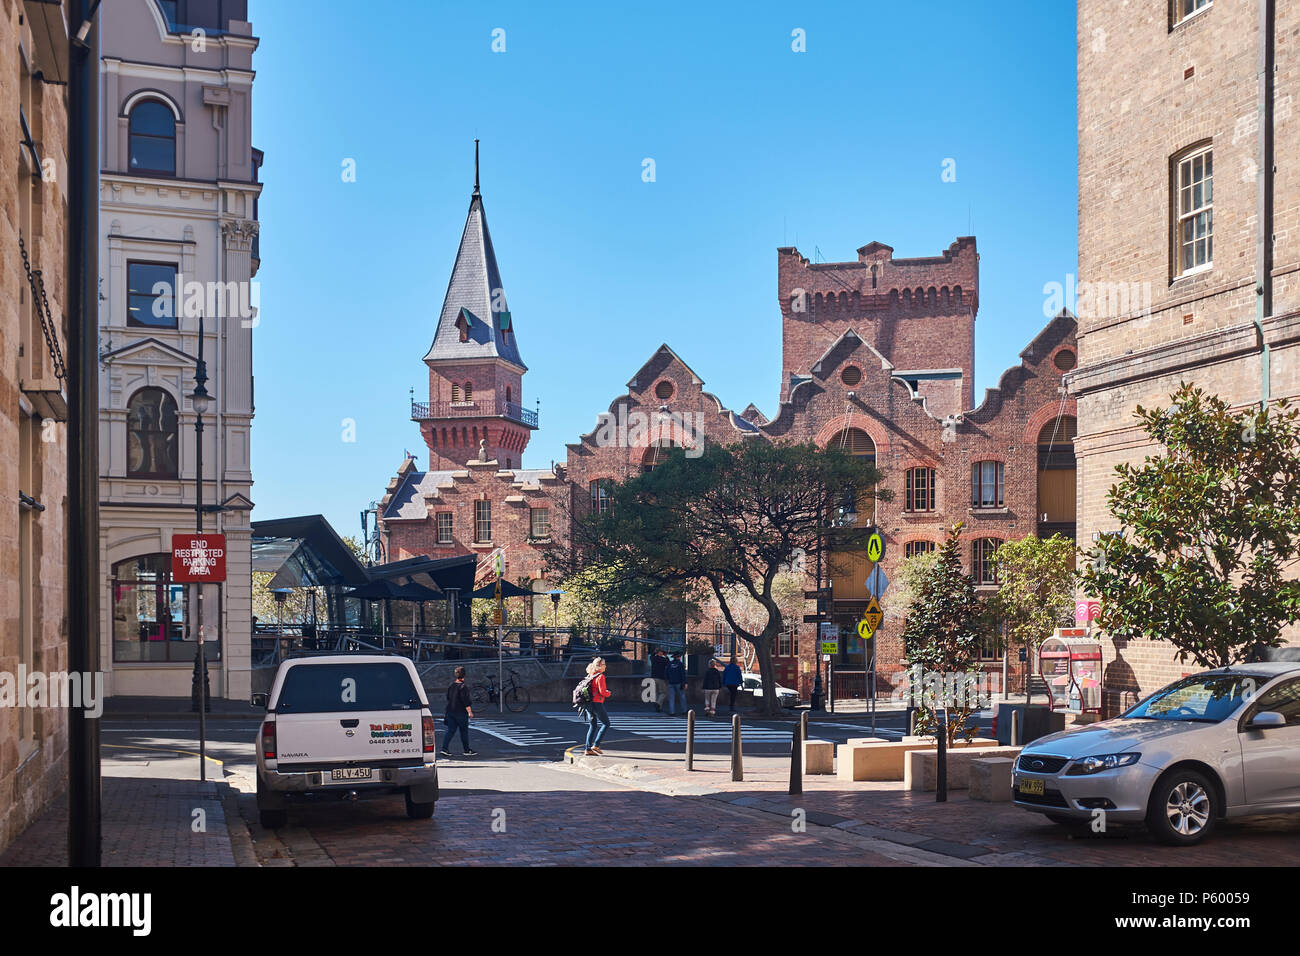 The Australasian Steam Navigation Building from Atherden Street in The Rocks with surrounding buildings on a sunny cloudless day, Sydney, Australia Stock Photo